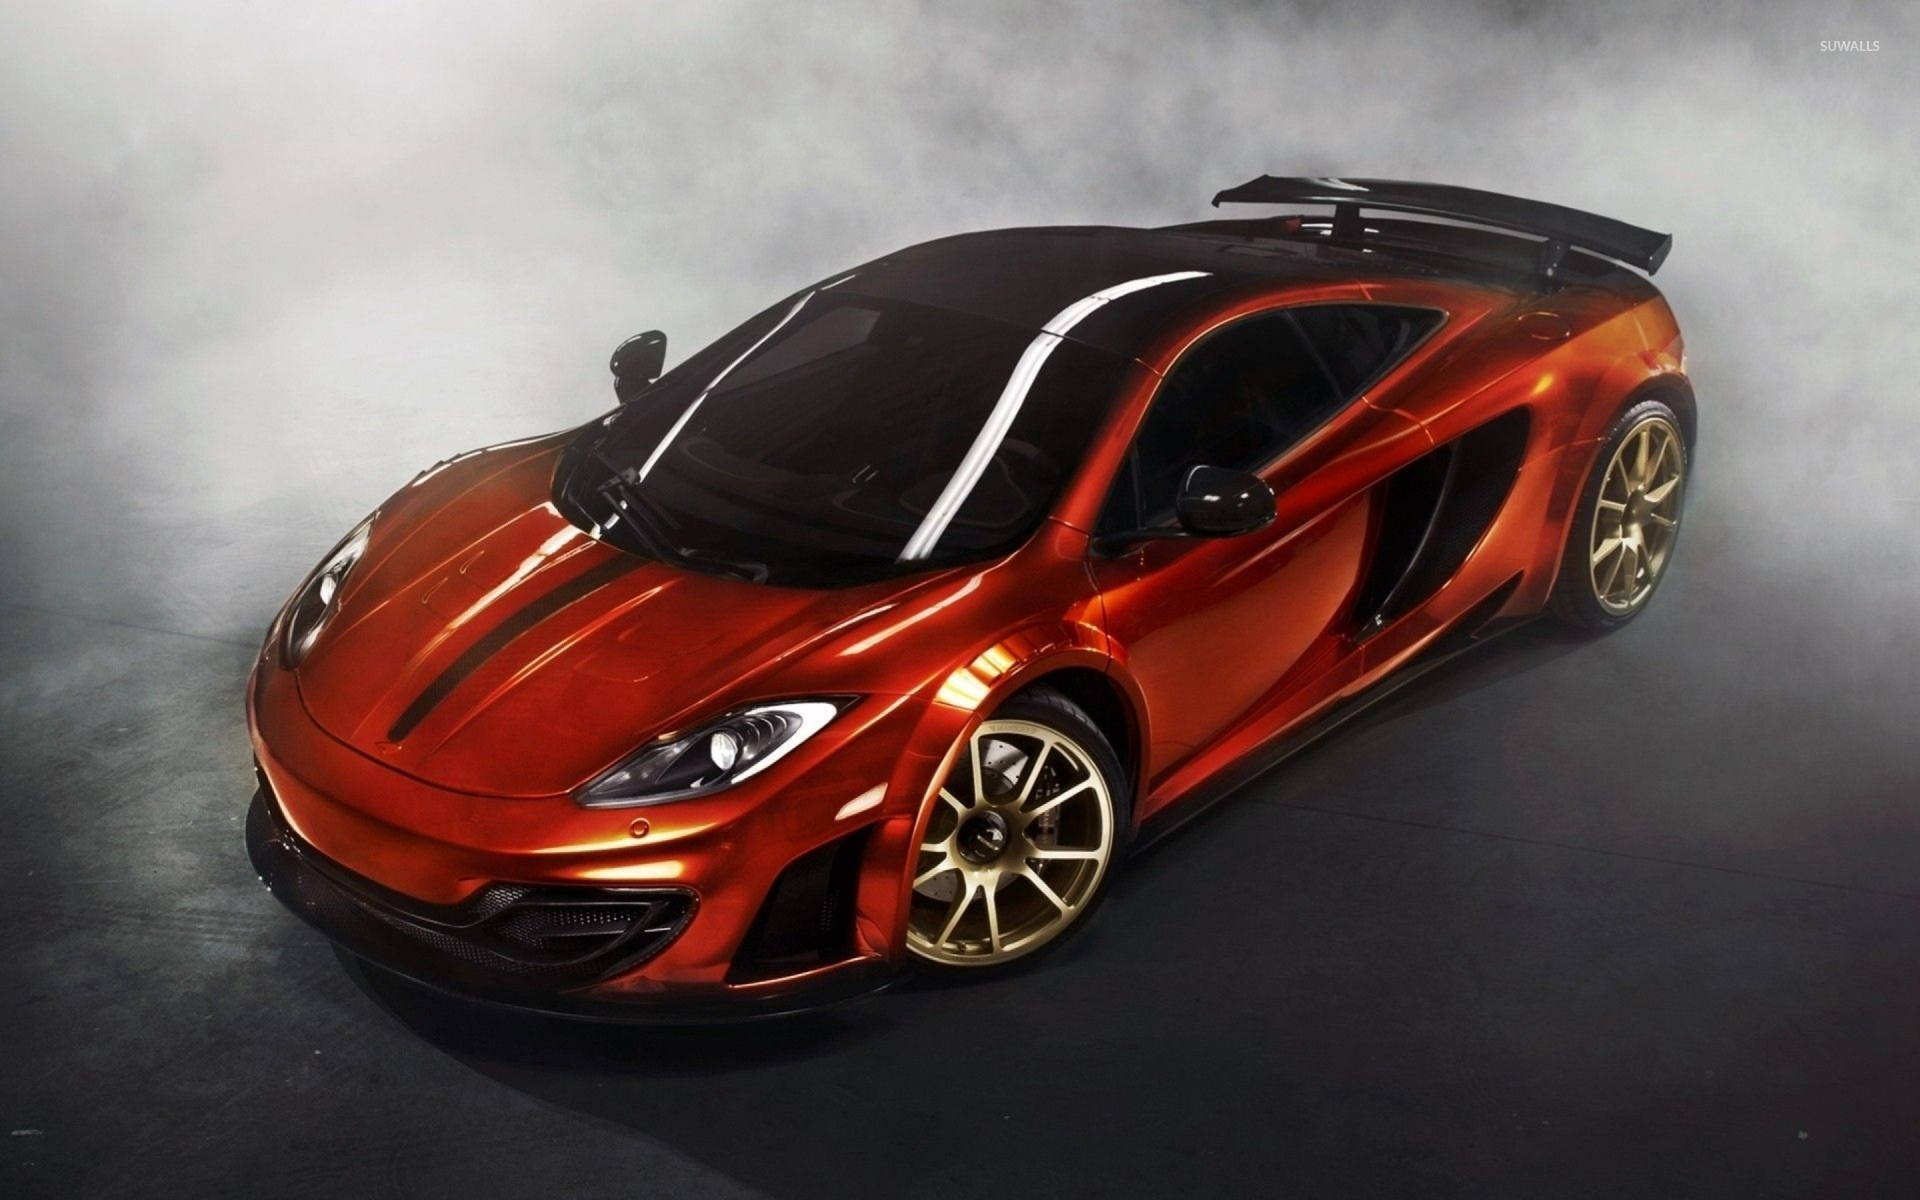 Download free motion backgrounds, free for commercial or personal use! Red Mclaren Mp4 12c Front Top View Wallpaper Car Wallpapers 50135